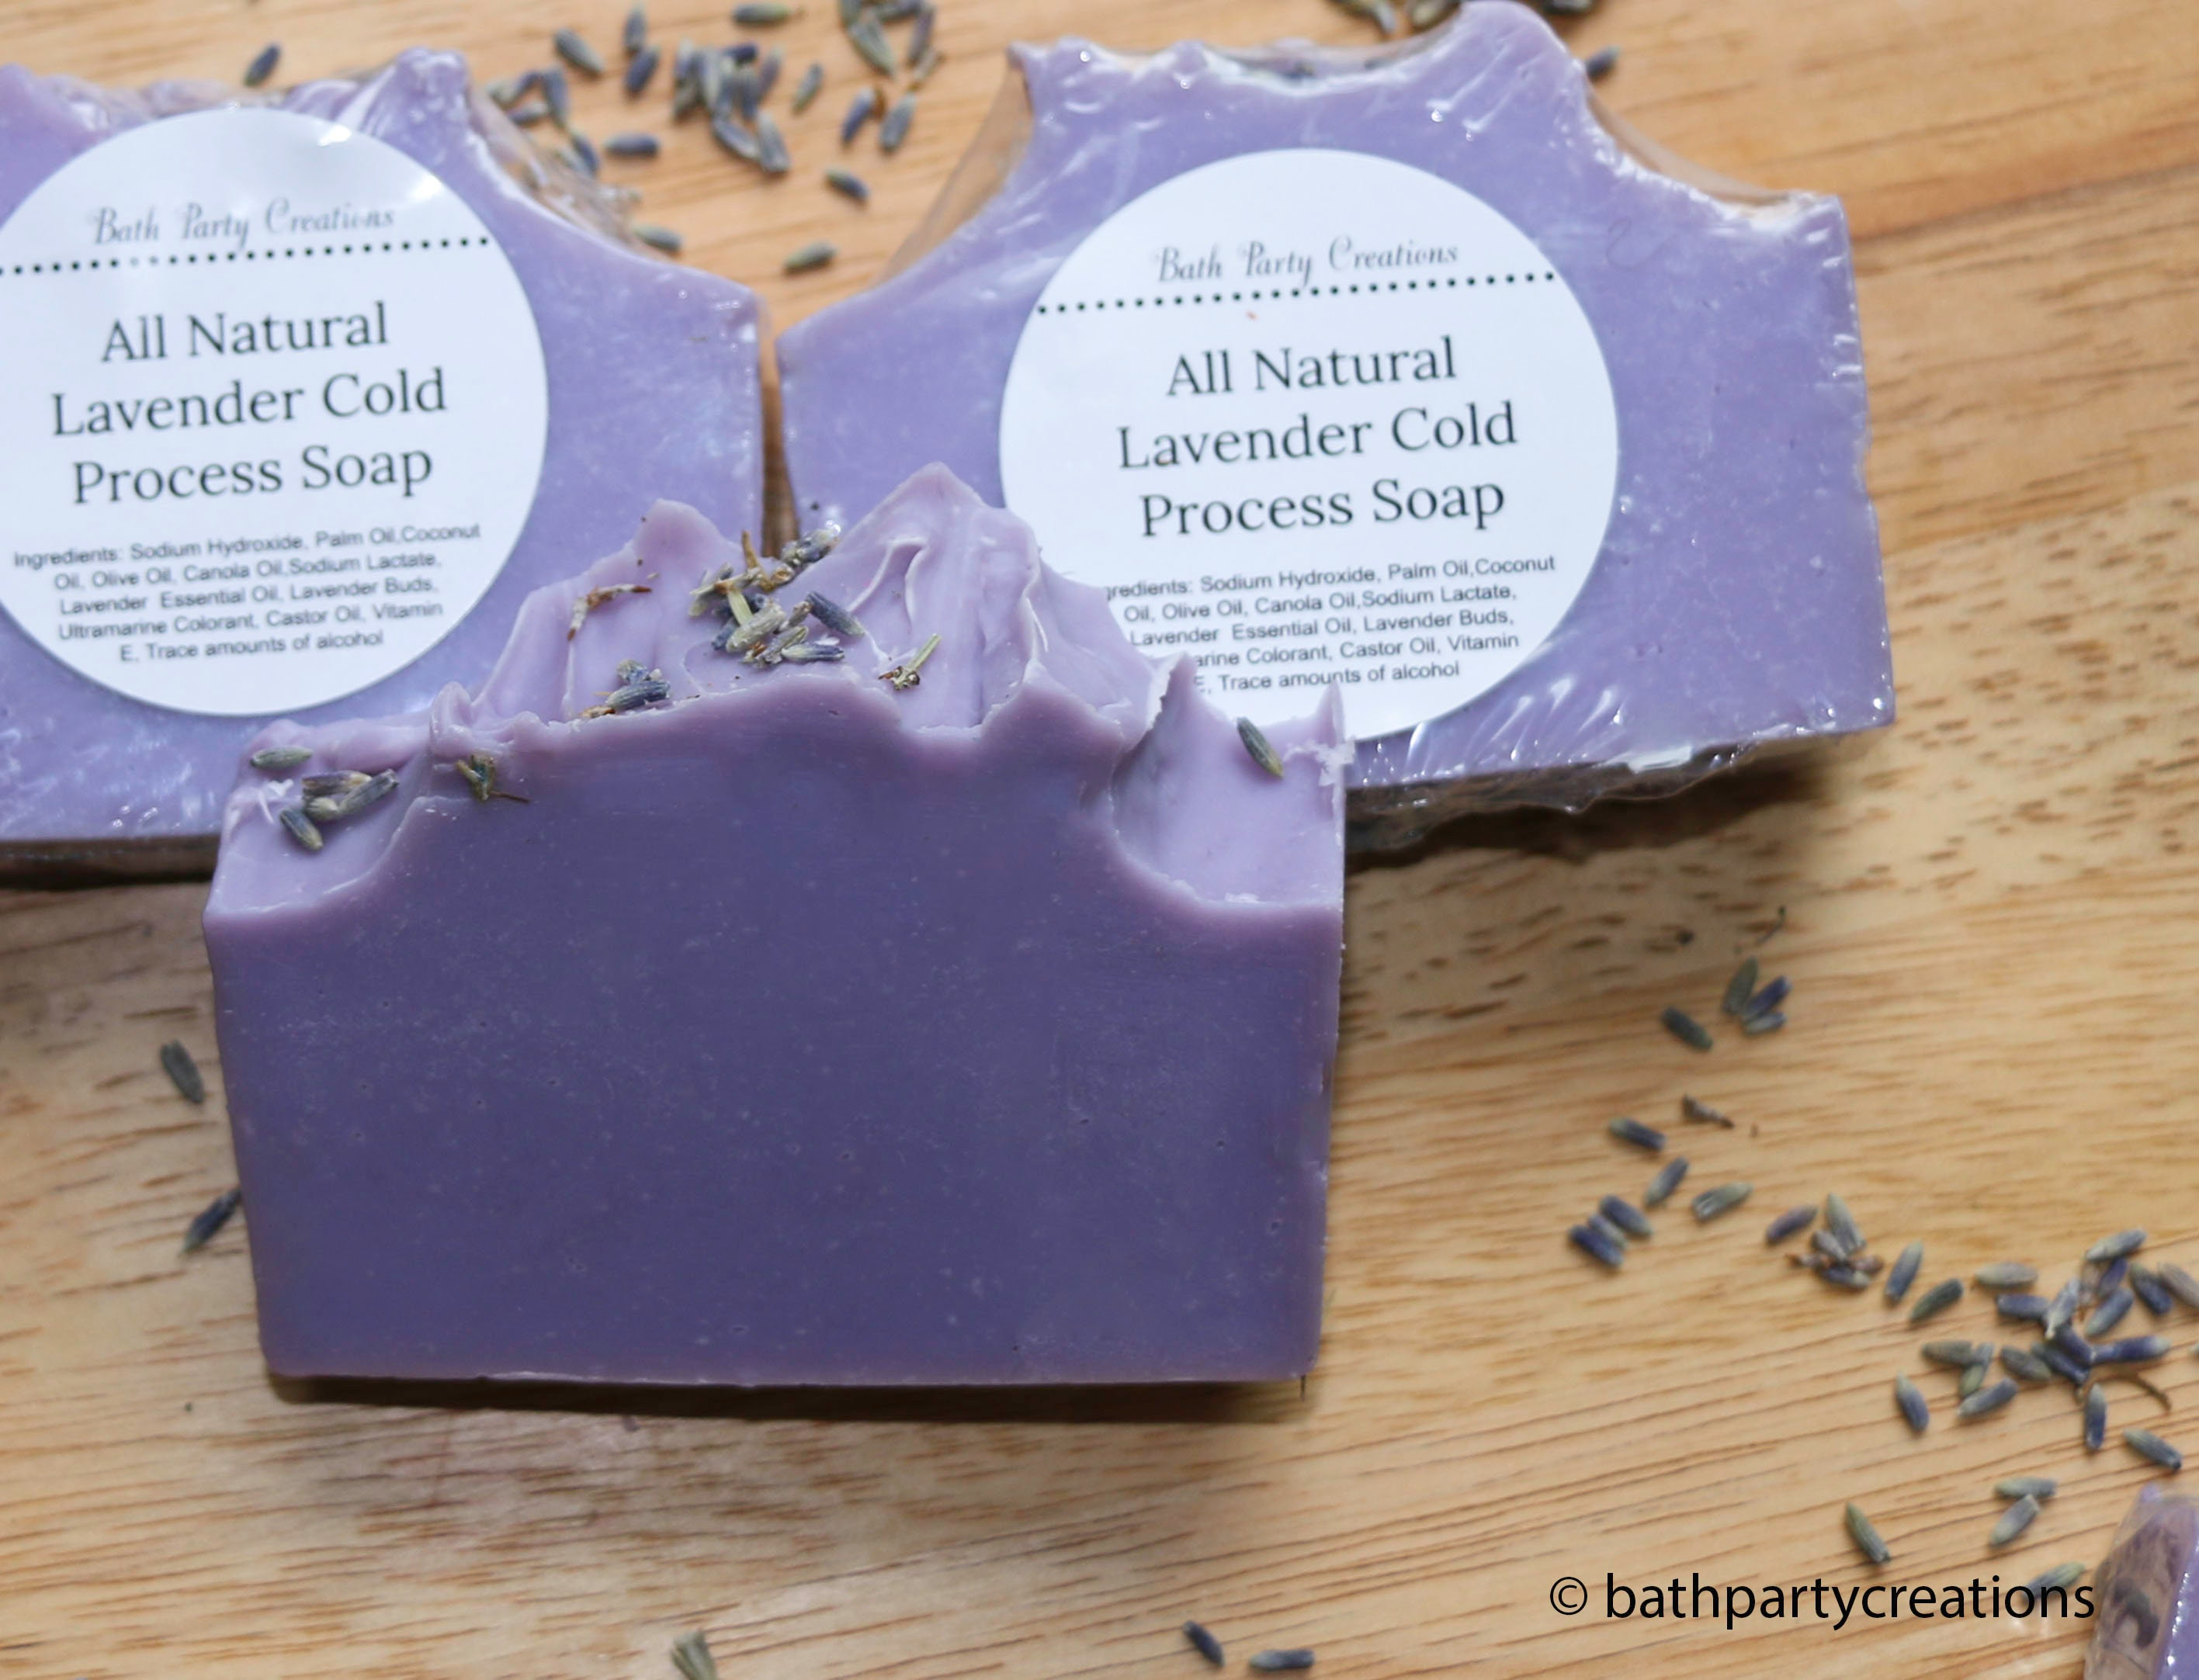 Essential lavender cold process soap all natural vegan cruelty essential lavender cold process soap all natural vegan cruelty free gift for mom gift for her easter gift cured negle Choice Image